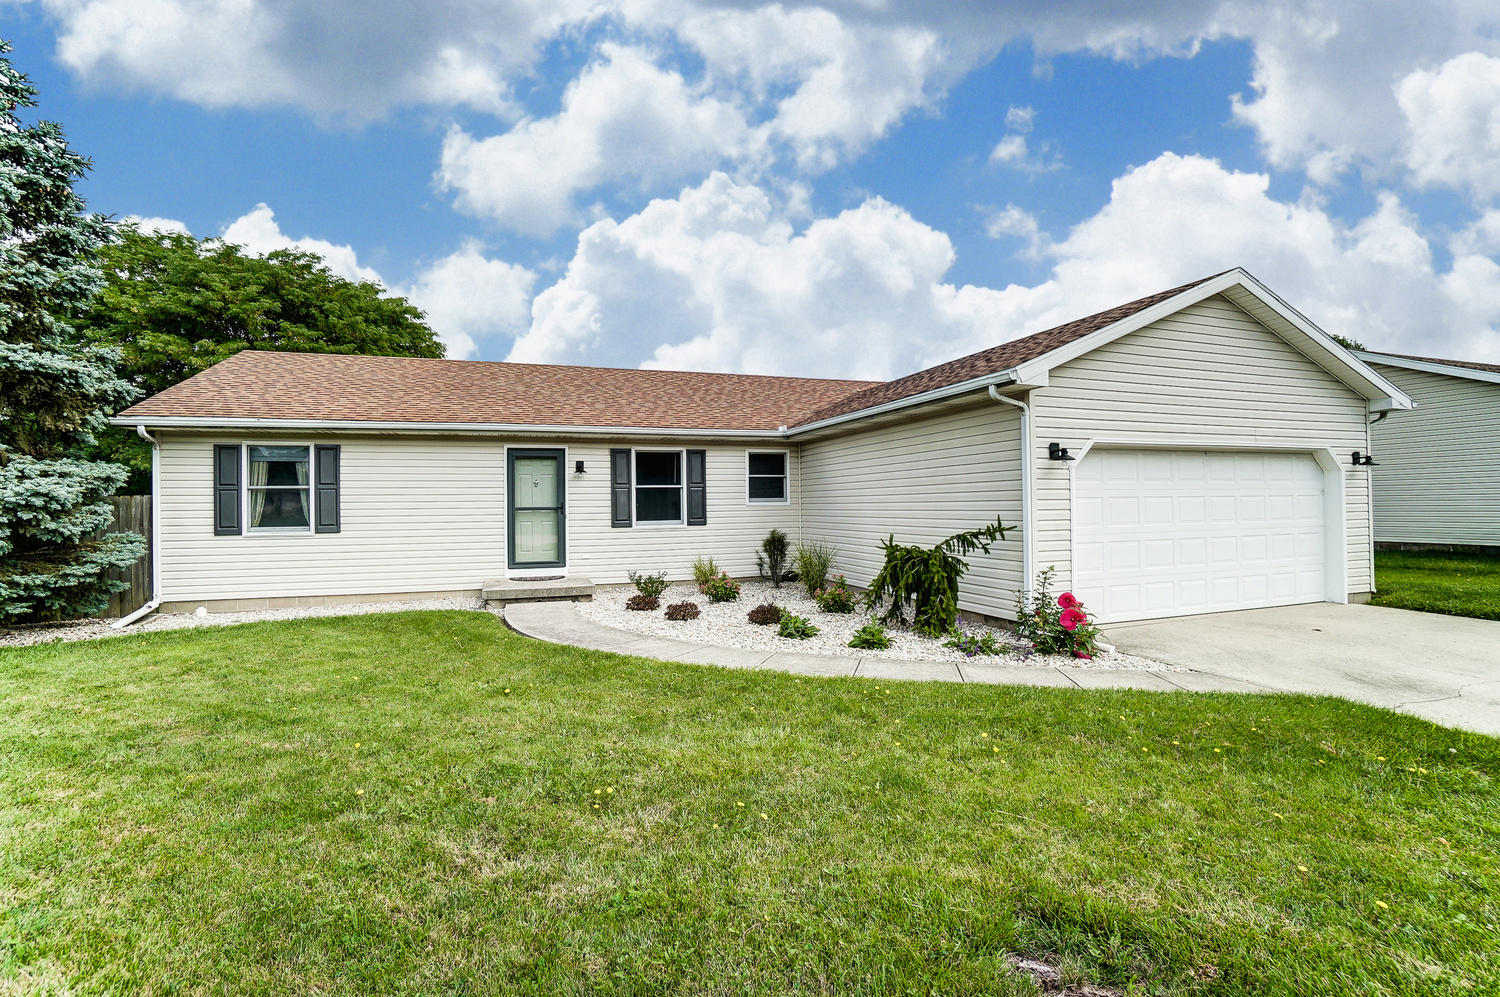 Photo 1 for 3500 Redbud Dr Troy, OH 45373